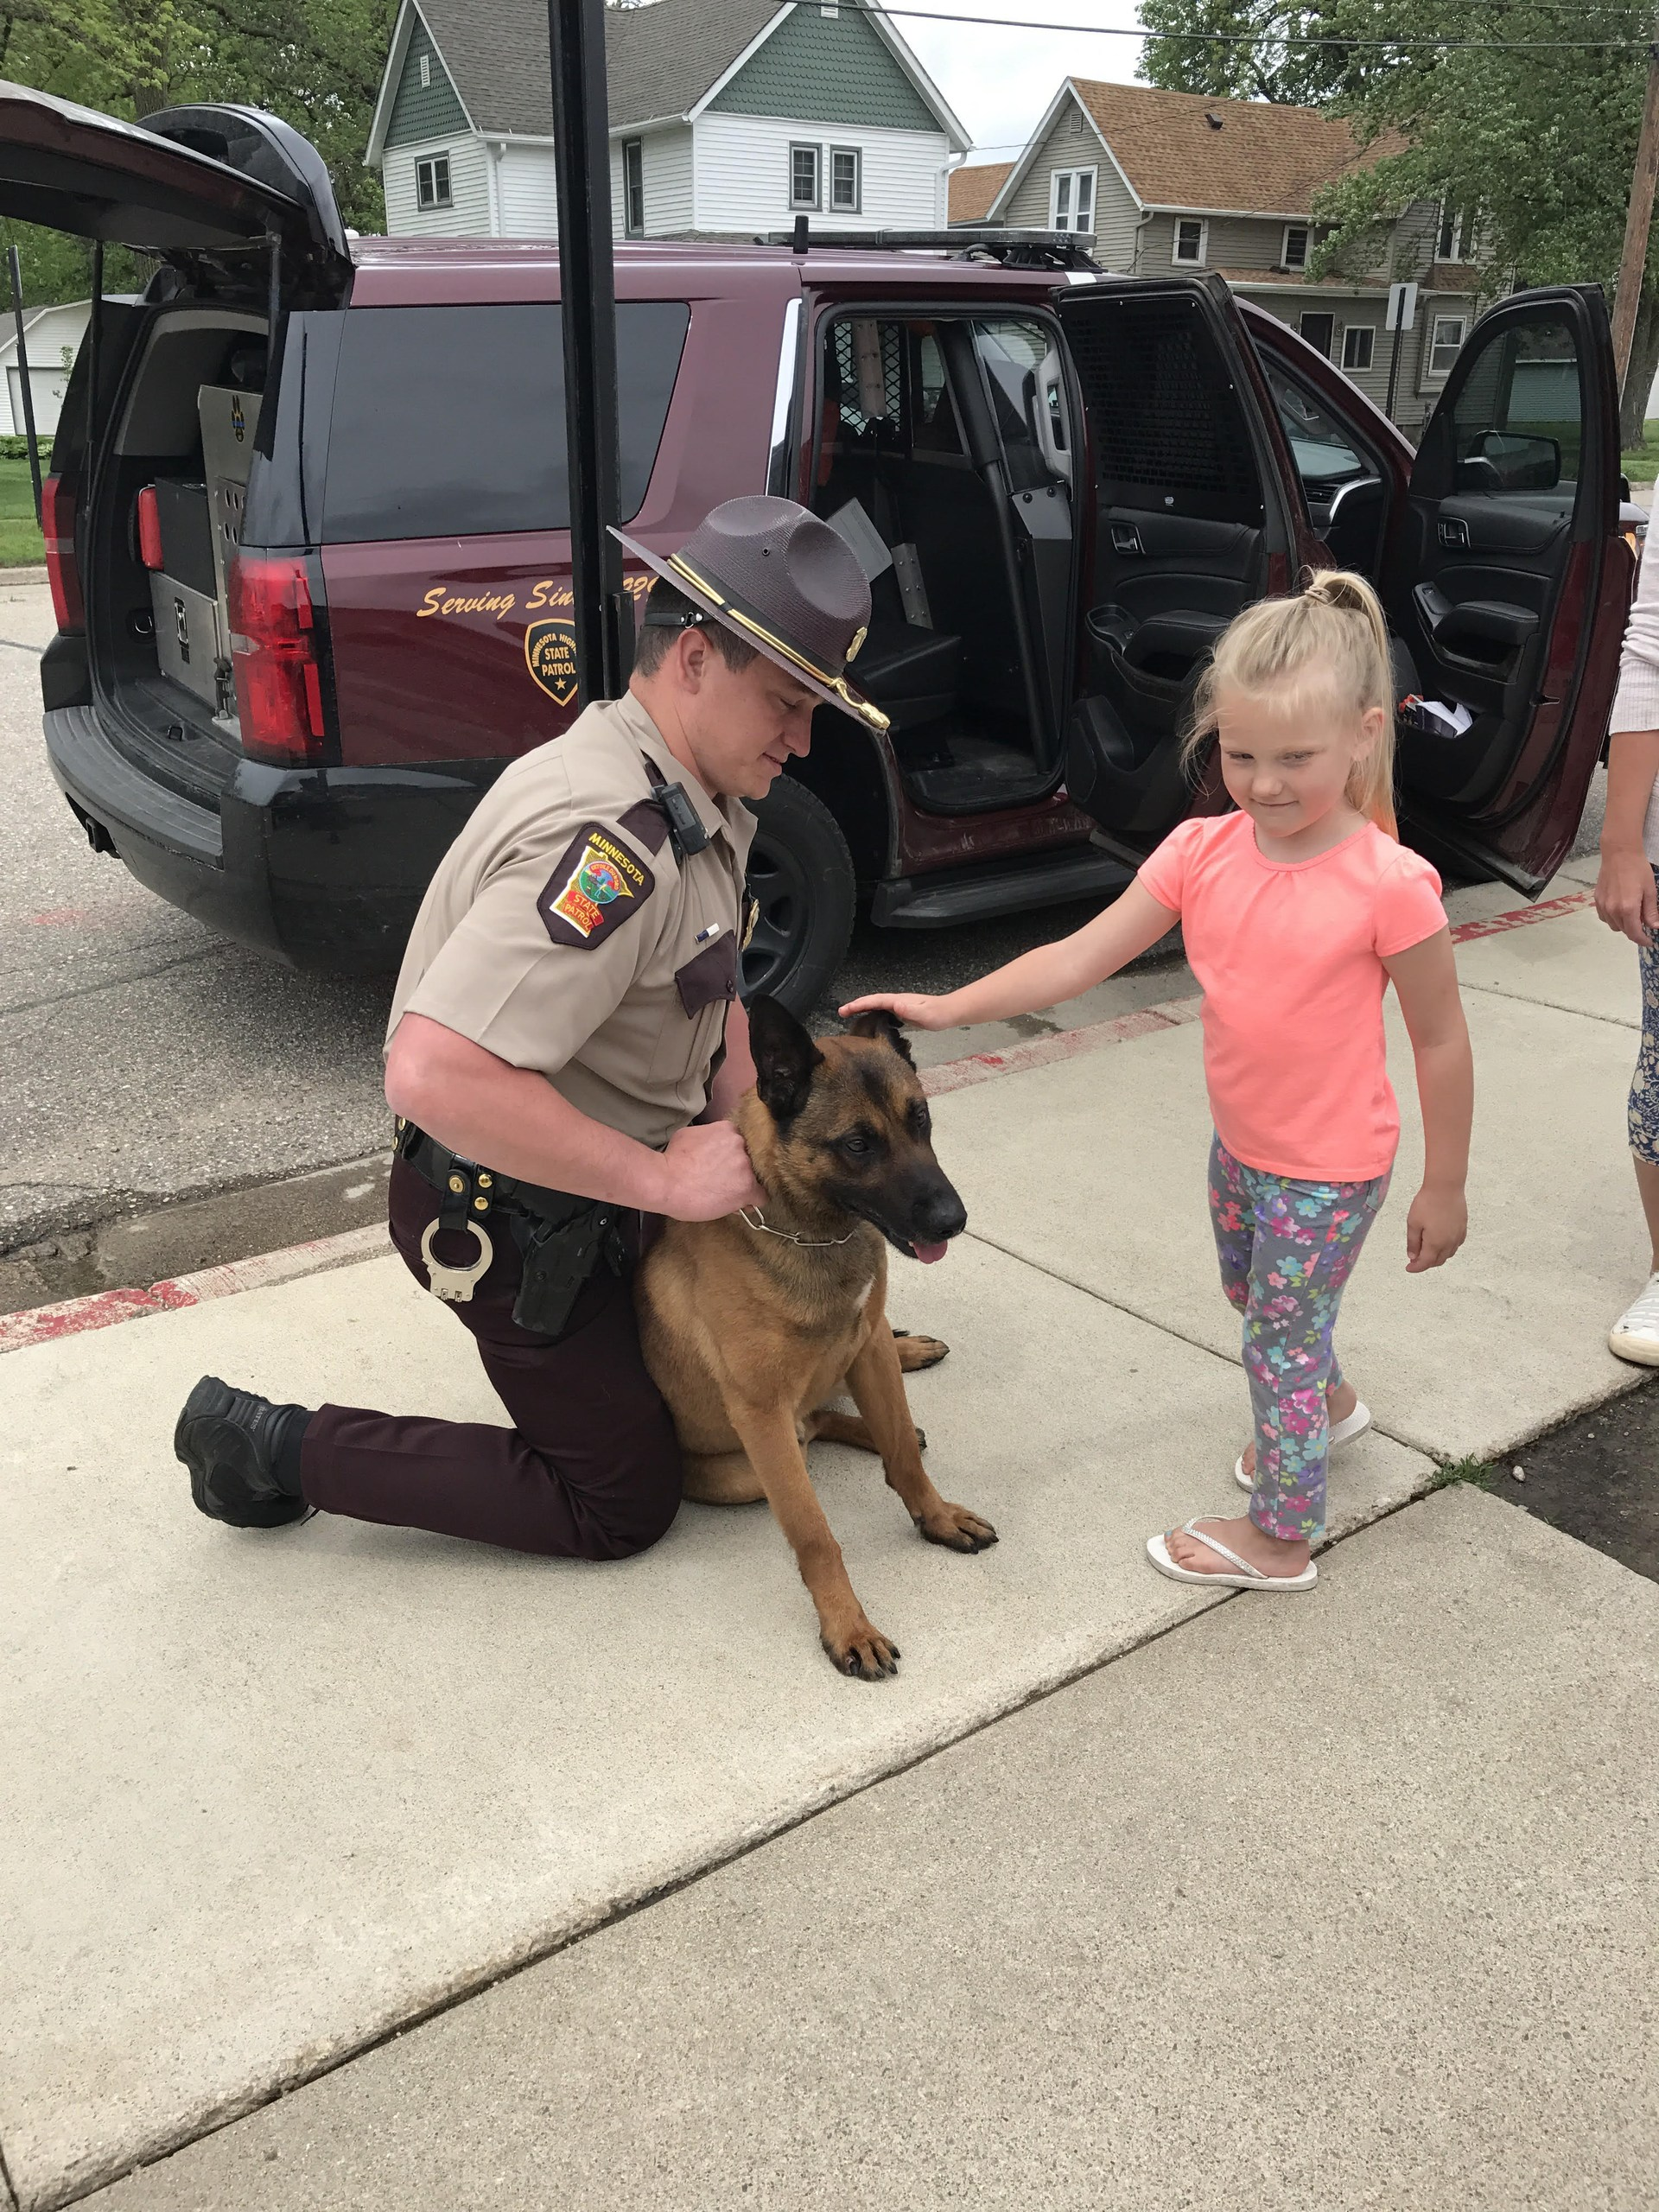 Kids learning about sheriff Patrick and his dog Jerry!